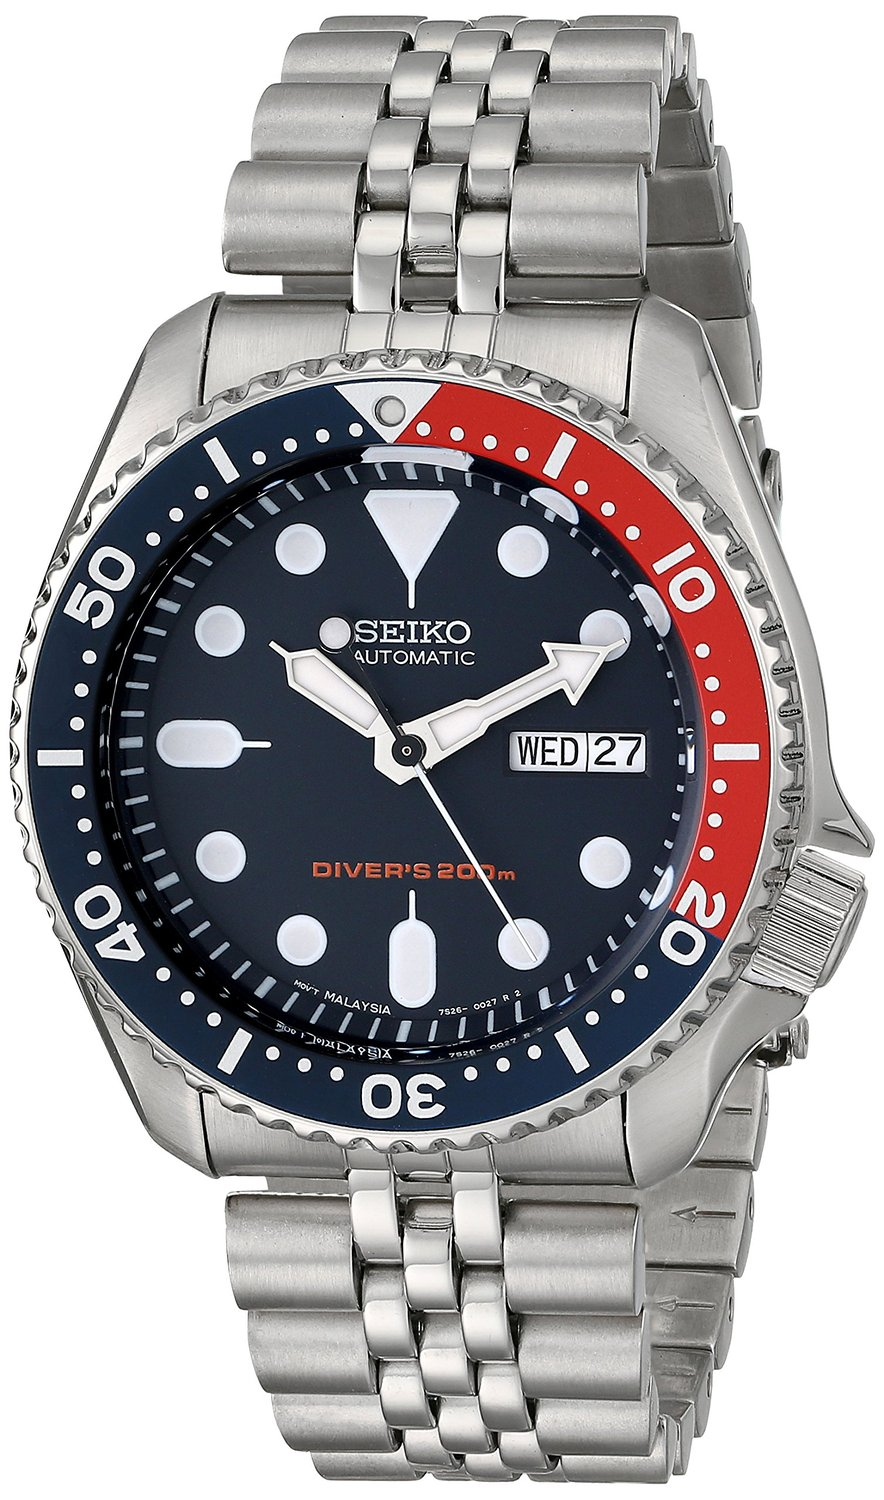 tough watches wound beaters seiko worn summer for under